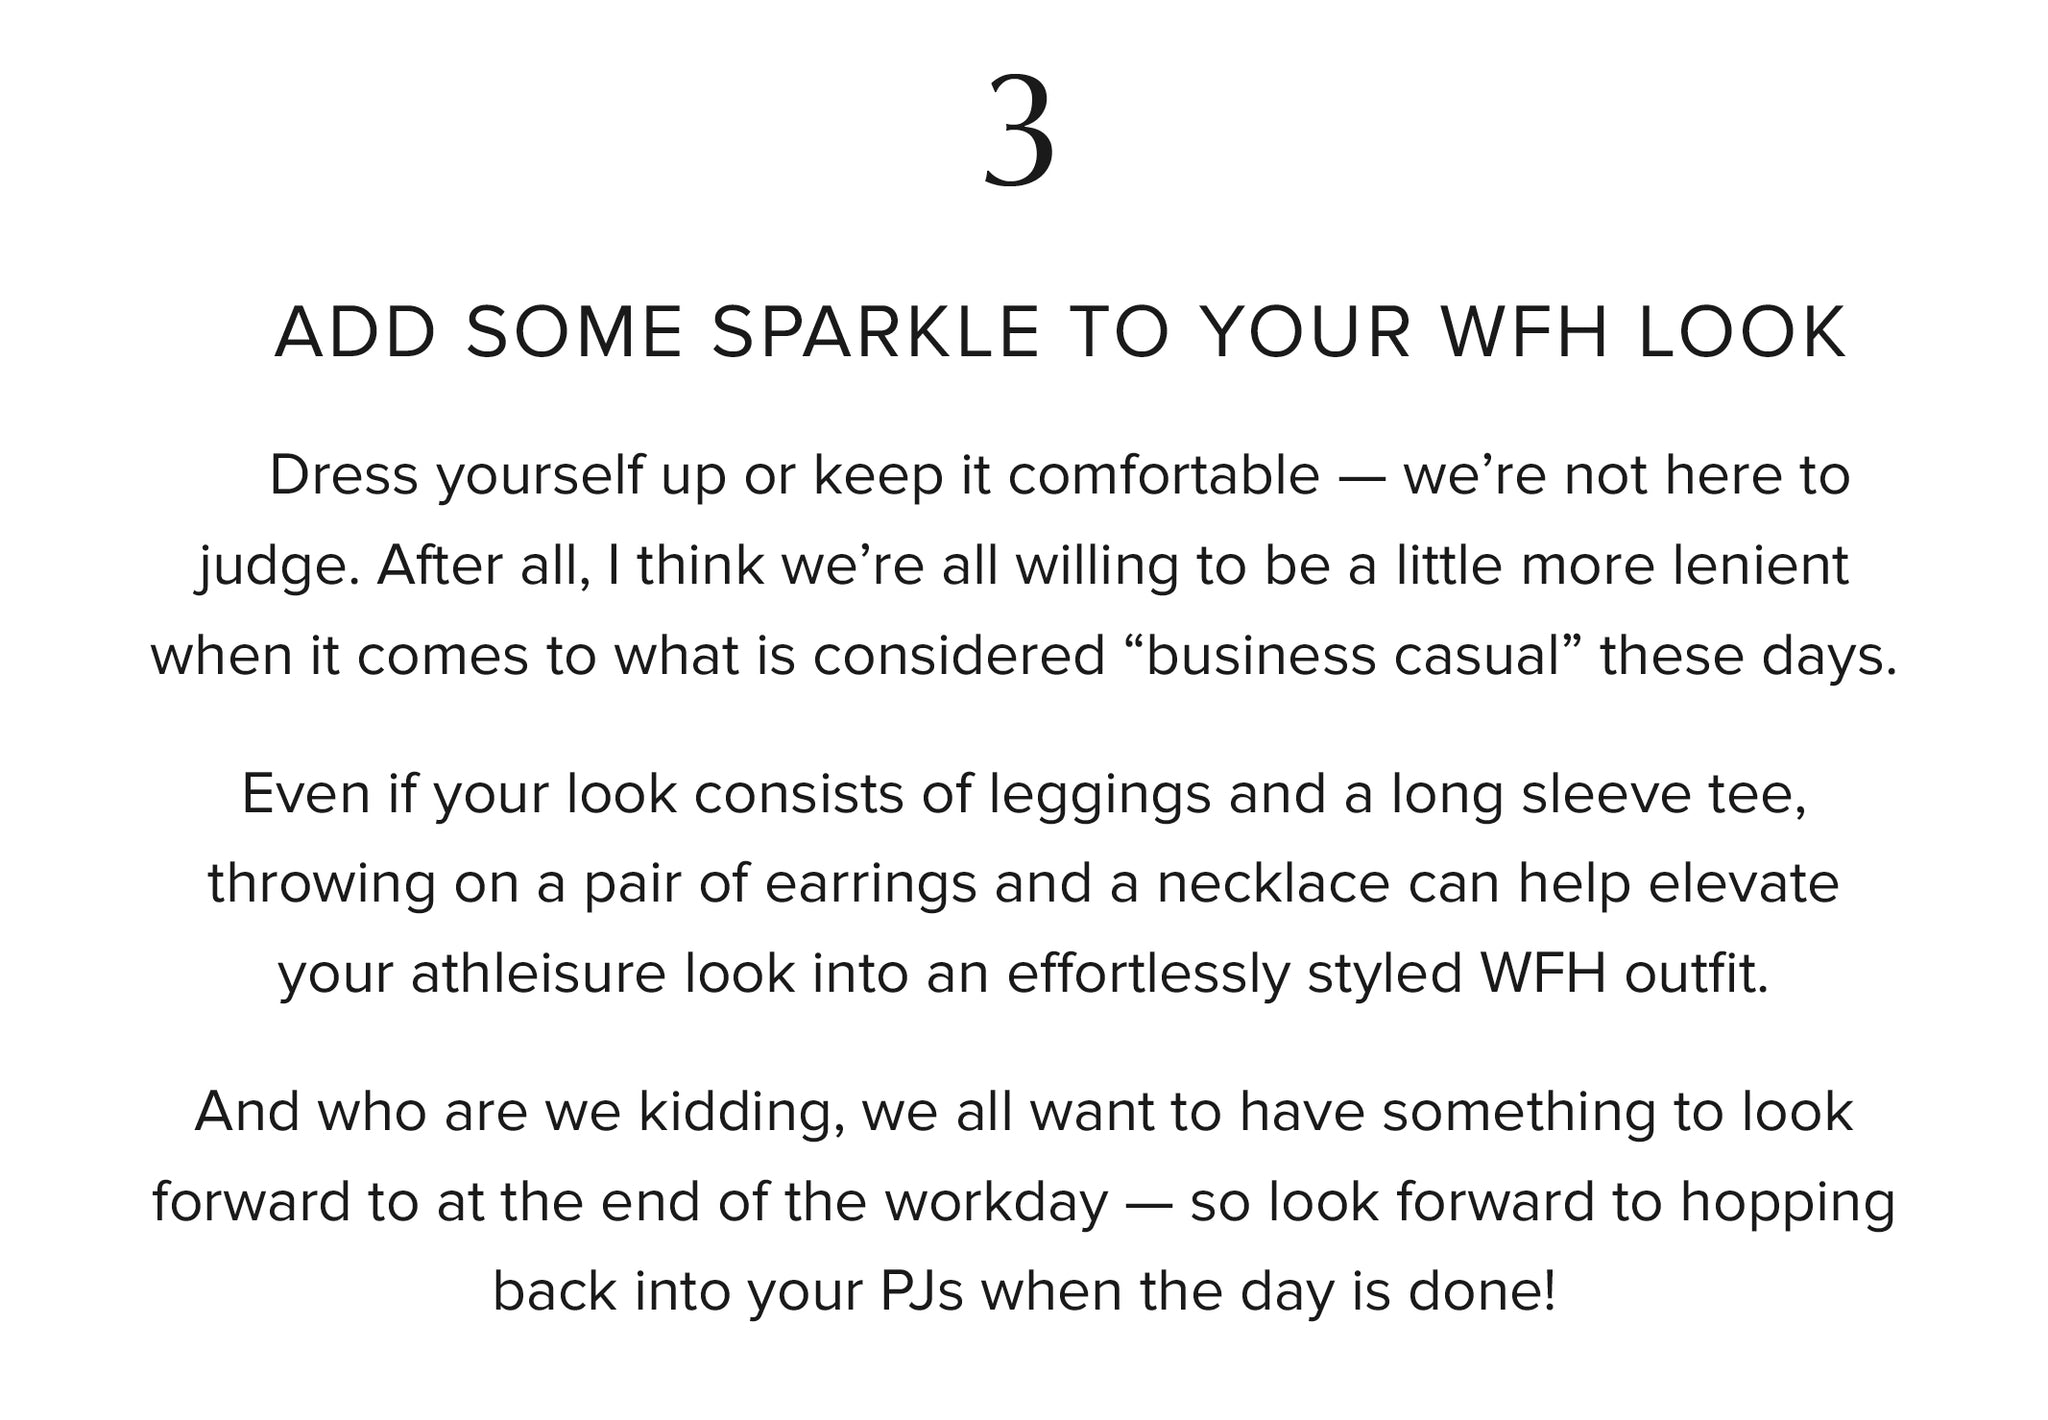 3. Add some sparkle to your WFH look